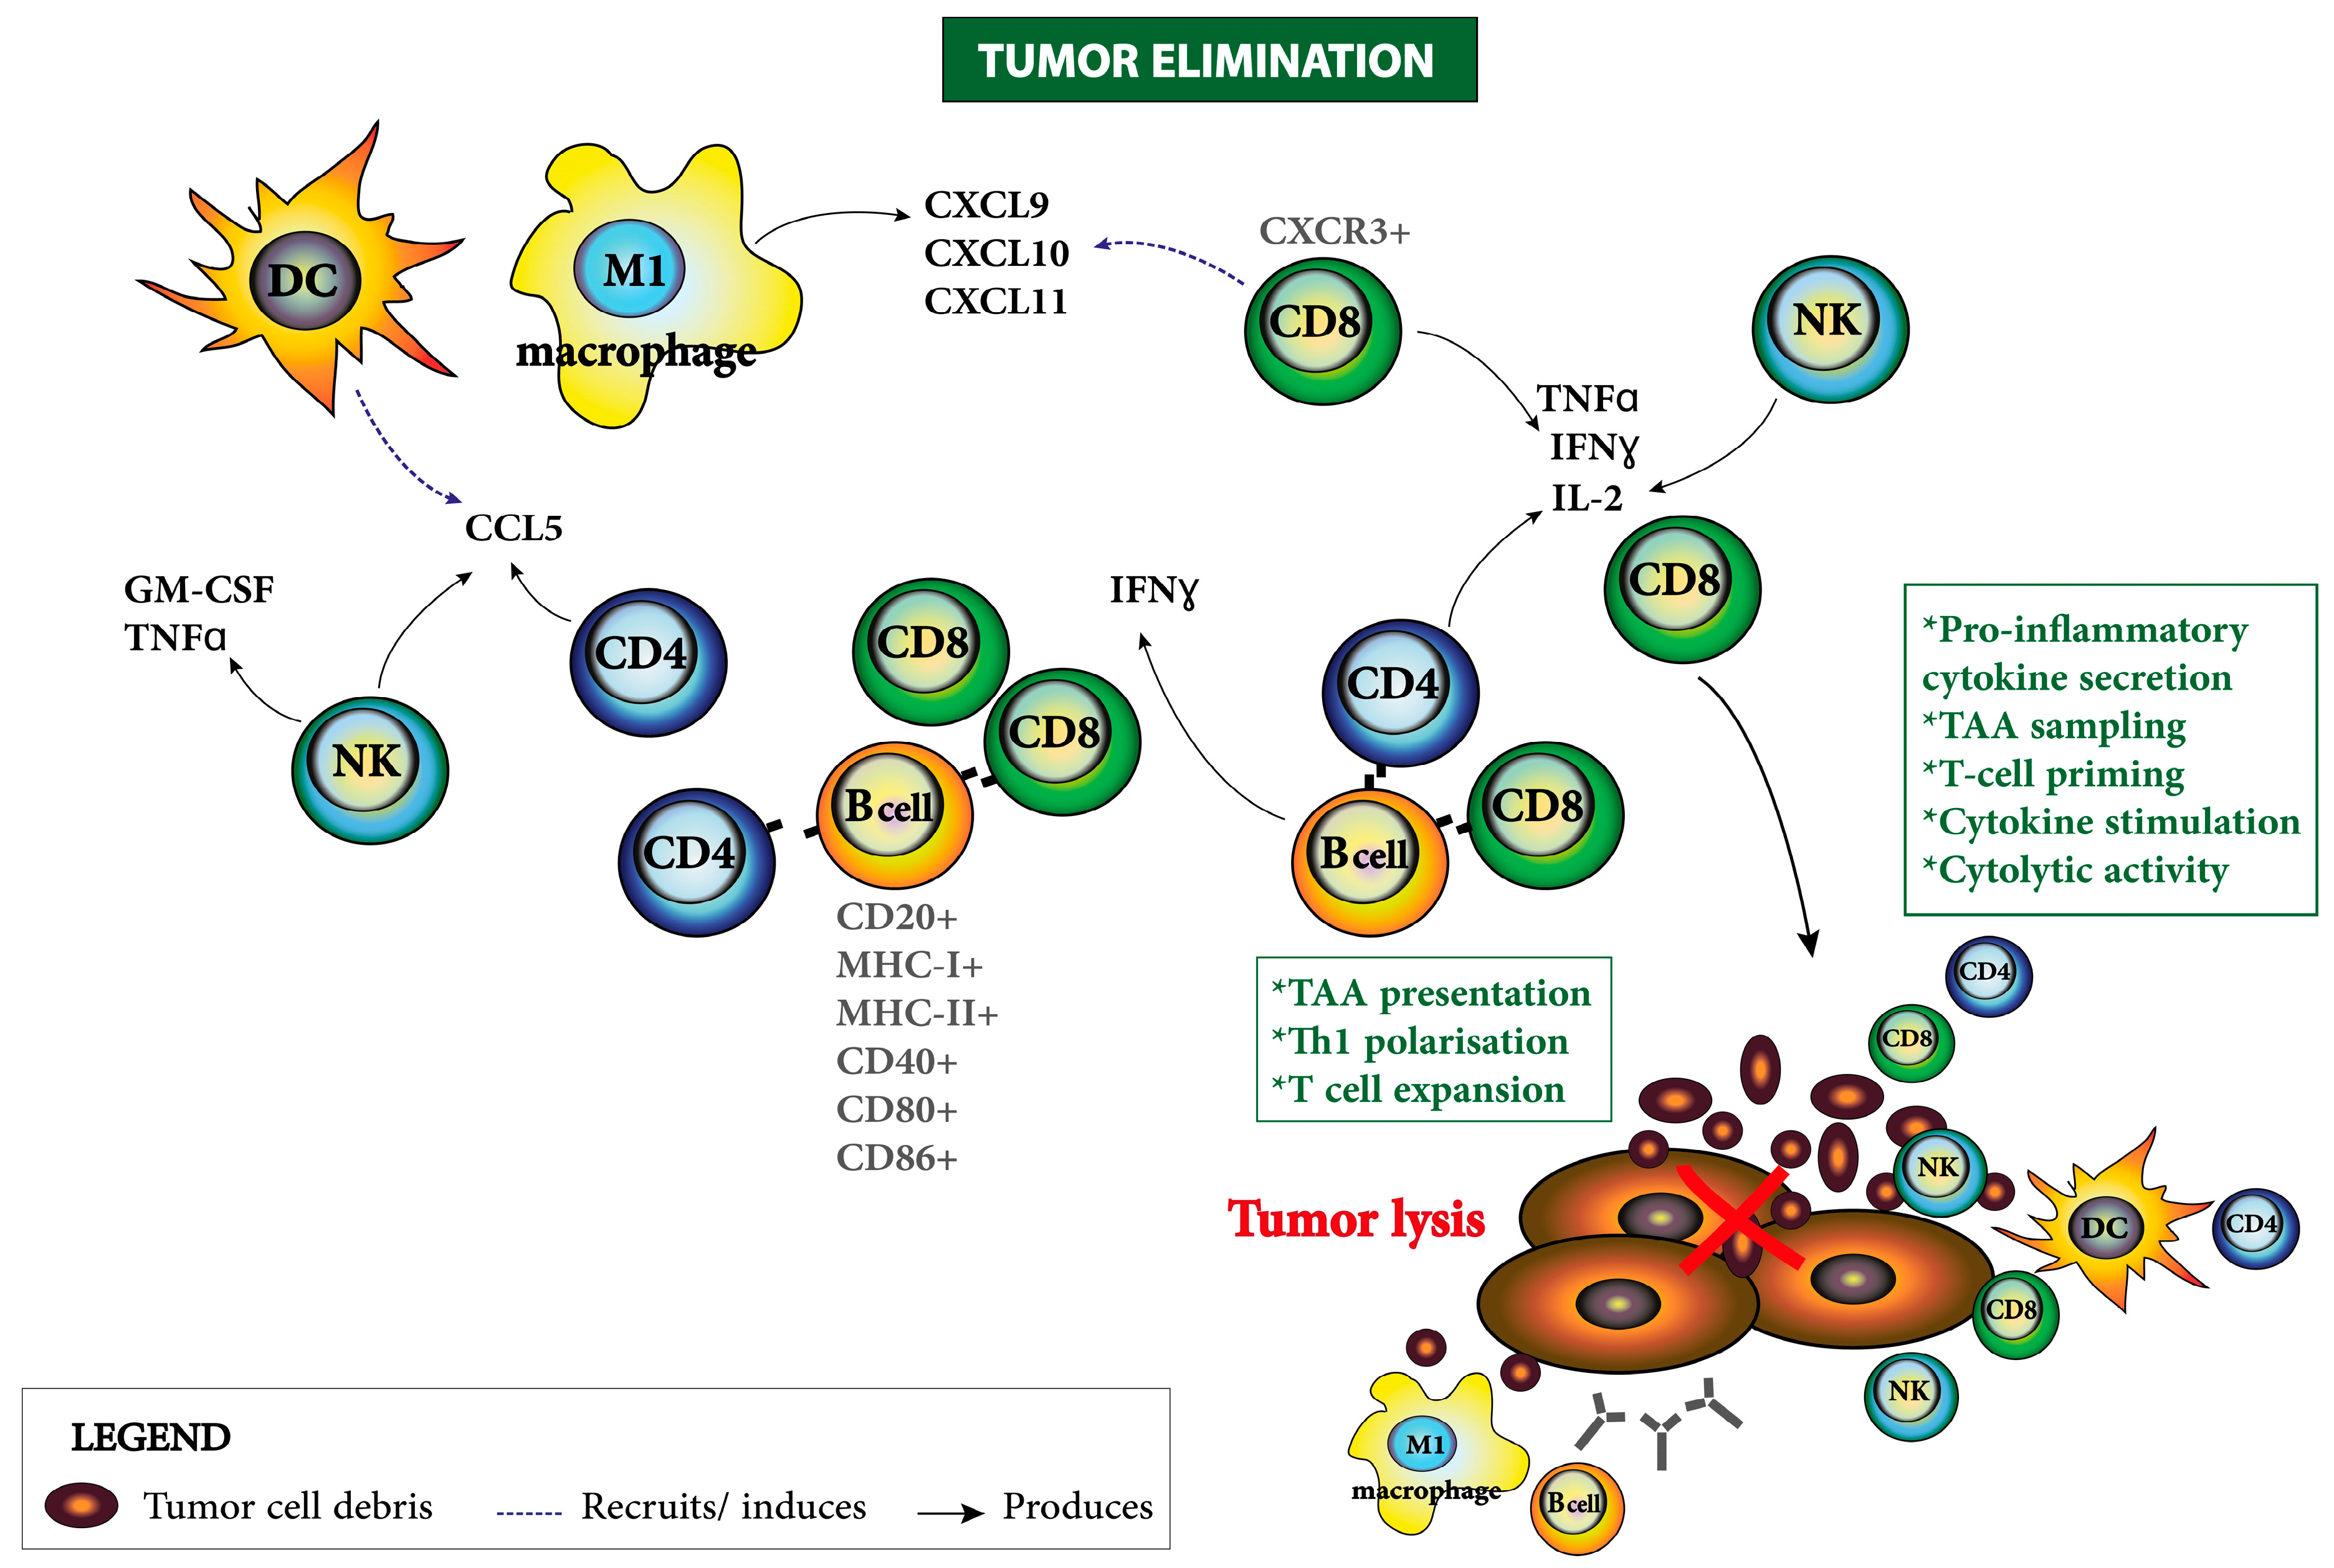 Cancers Free Full Text The Tumor Microenvironment Of Epithelial Ovarian Cancer And Its Influence On Response To Immunotherapy Html